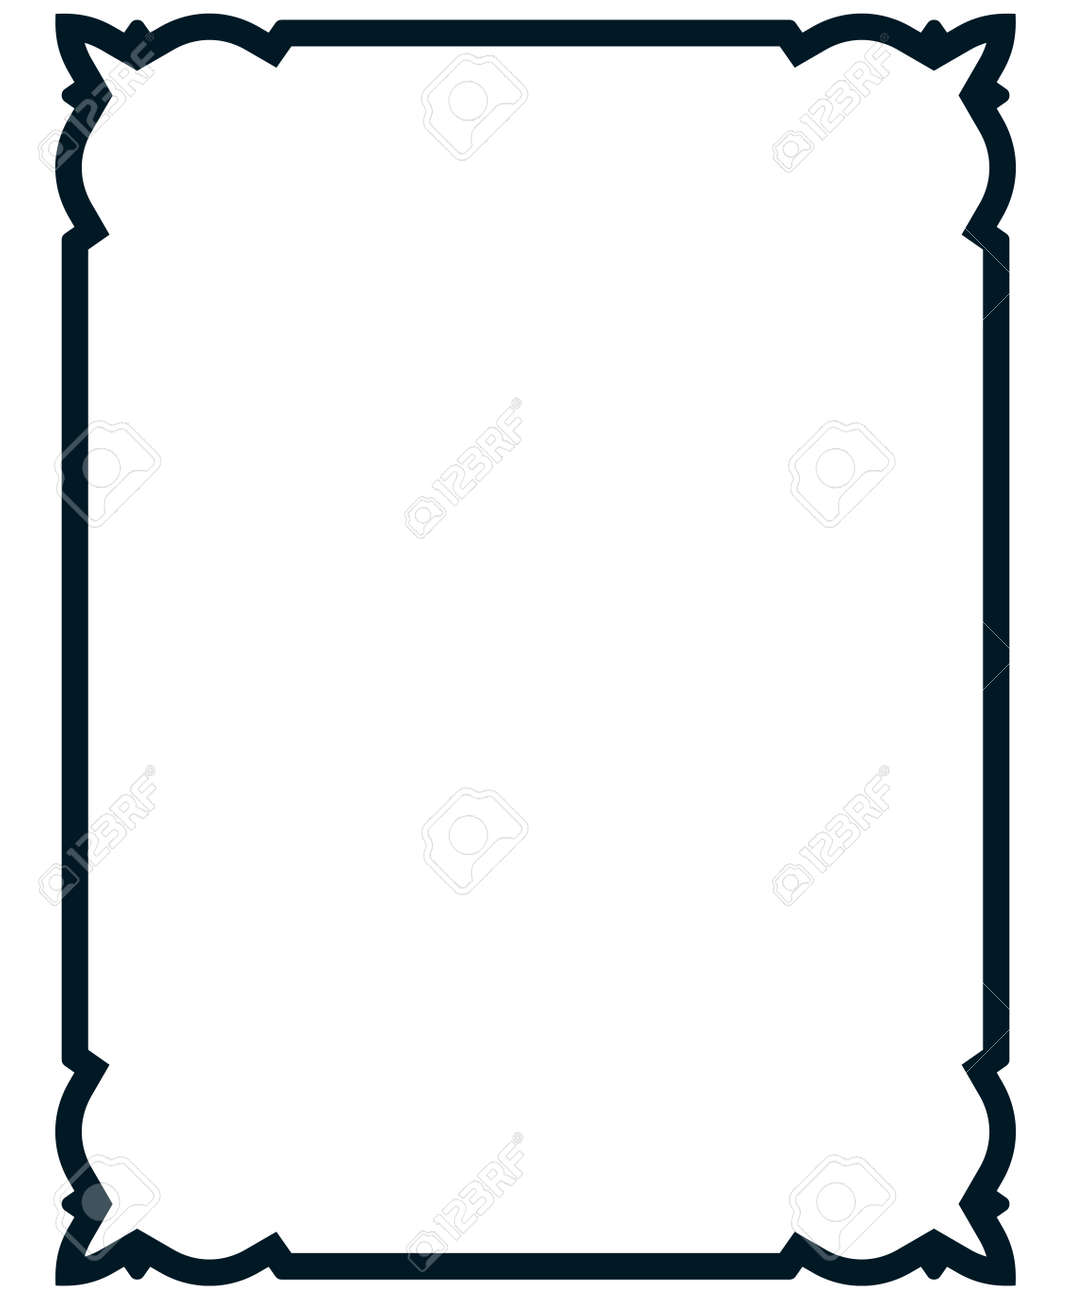 frame vector vintage. menu page elegant border. royalty free